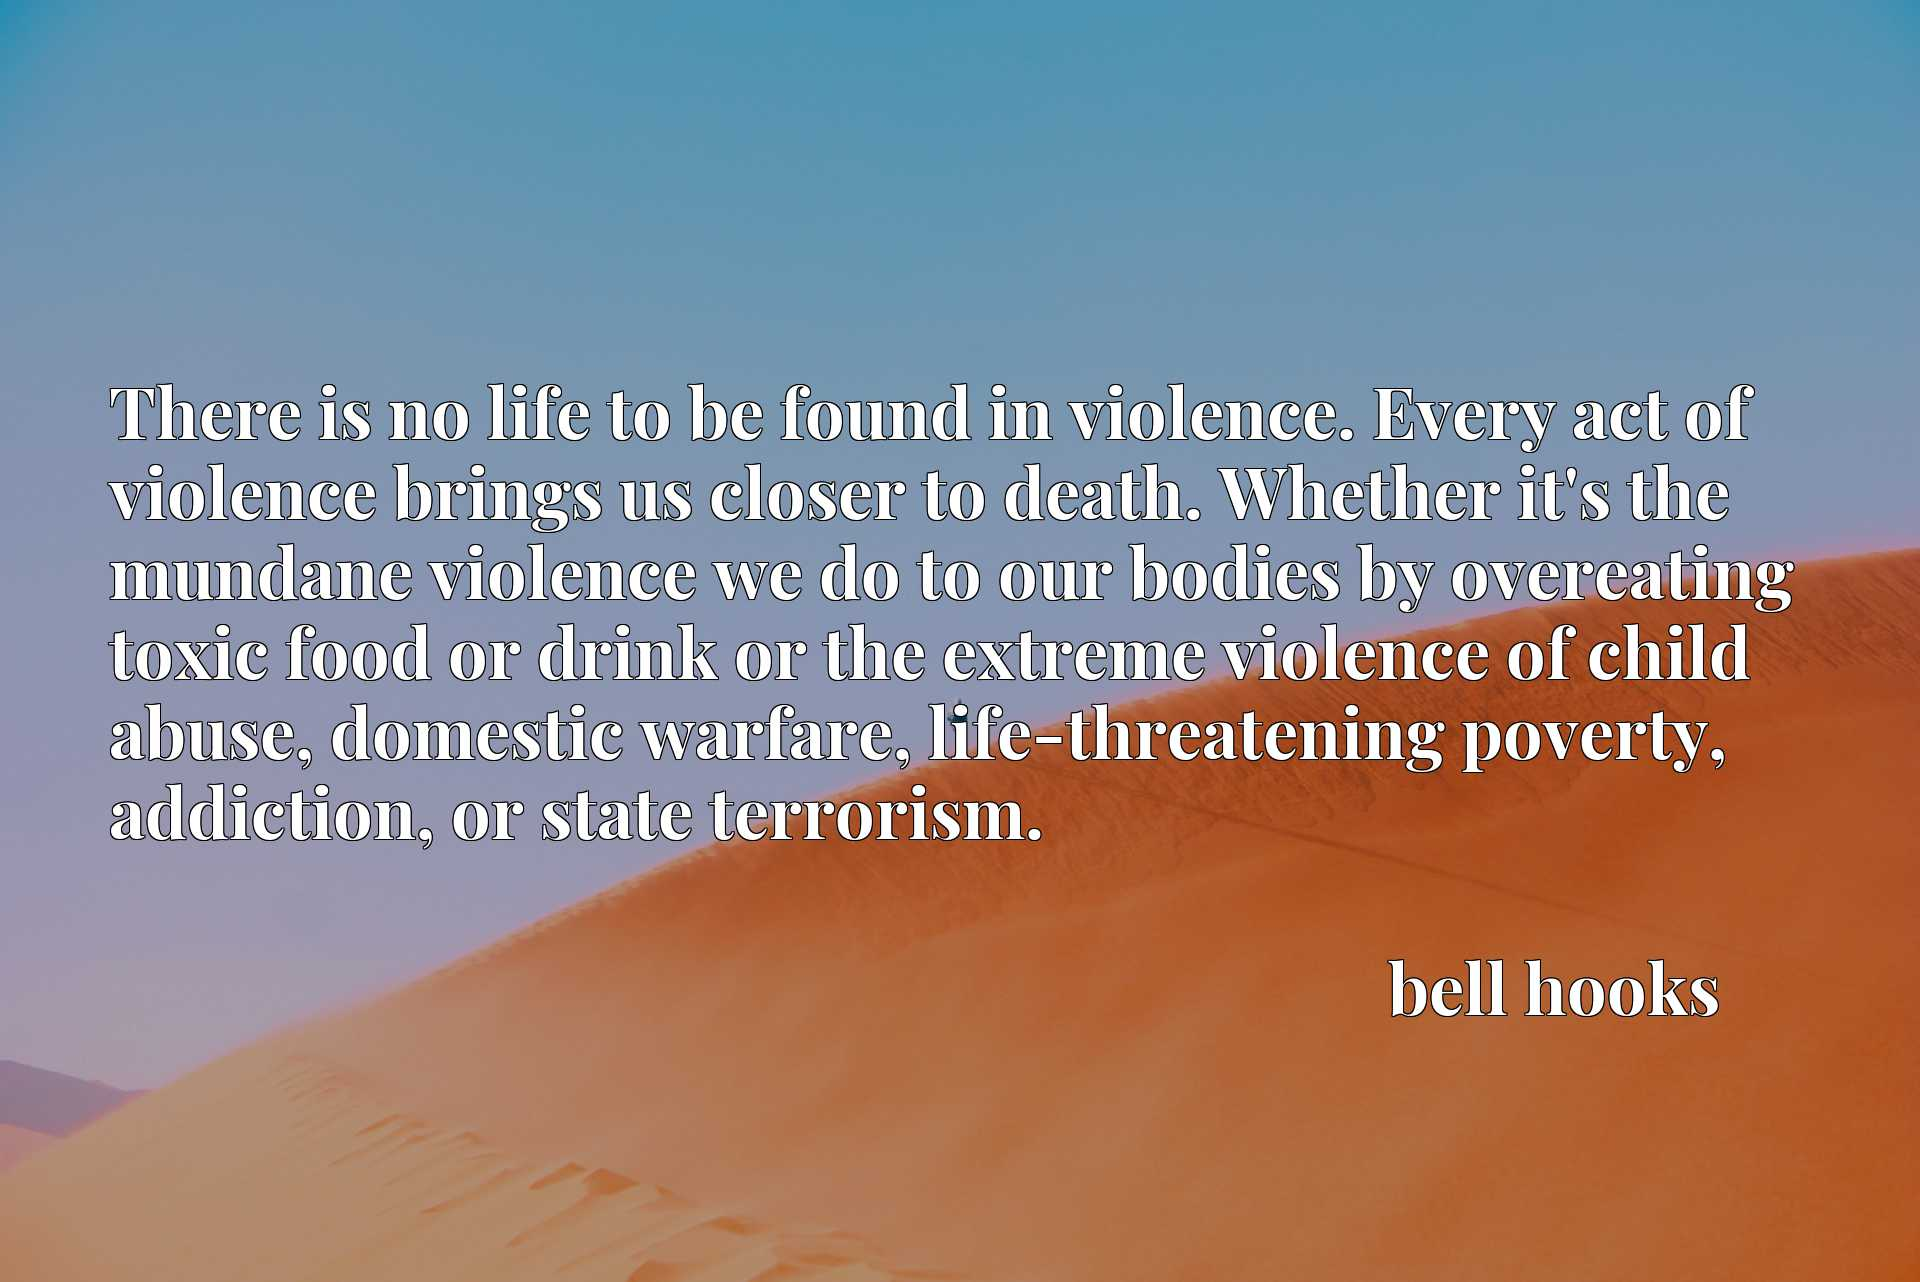 There is no life to be found in violence. Every act of violence brings us closer to death. Whether it's the mundane violence we do to our bodies by overeating toxic food or drink or the extreme violence of child abuse, domestic warfare, life-threatening poverty, addiction, or state terrorism.